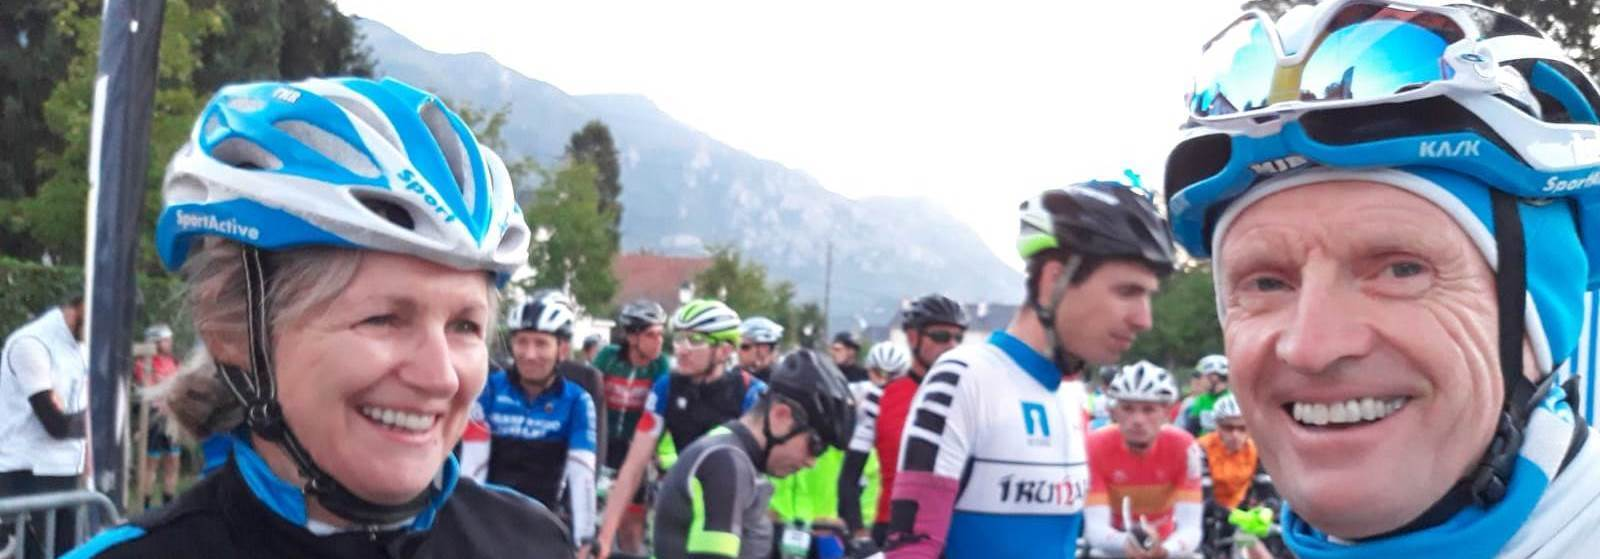 Marmotte Granfondo Pyrenees - ride it with SportActive